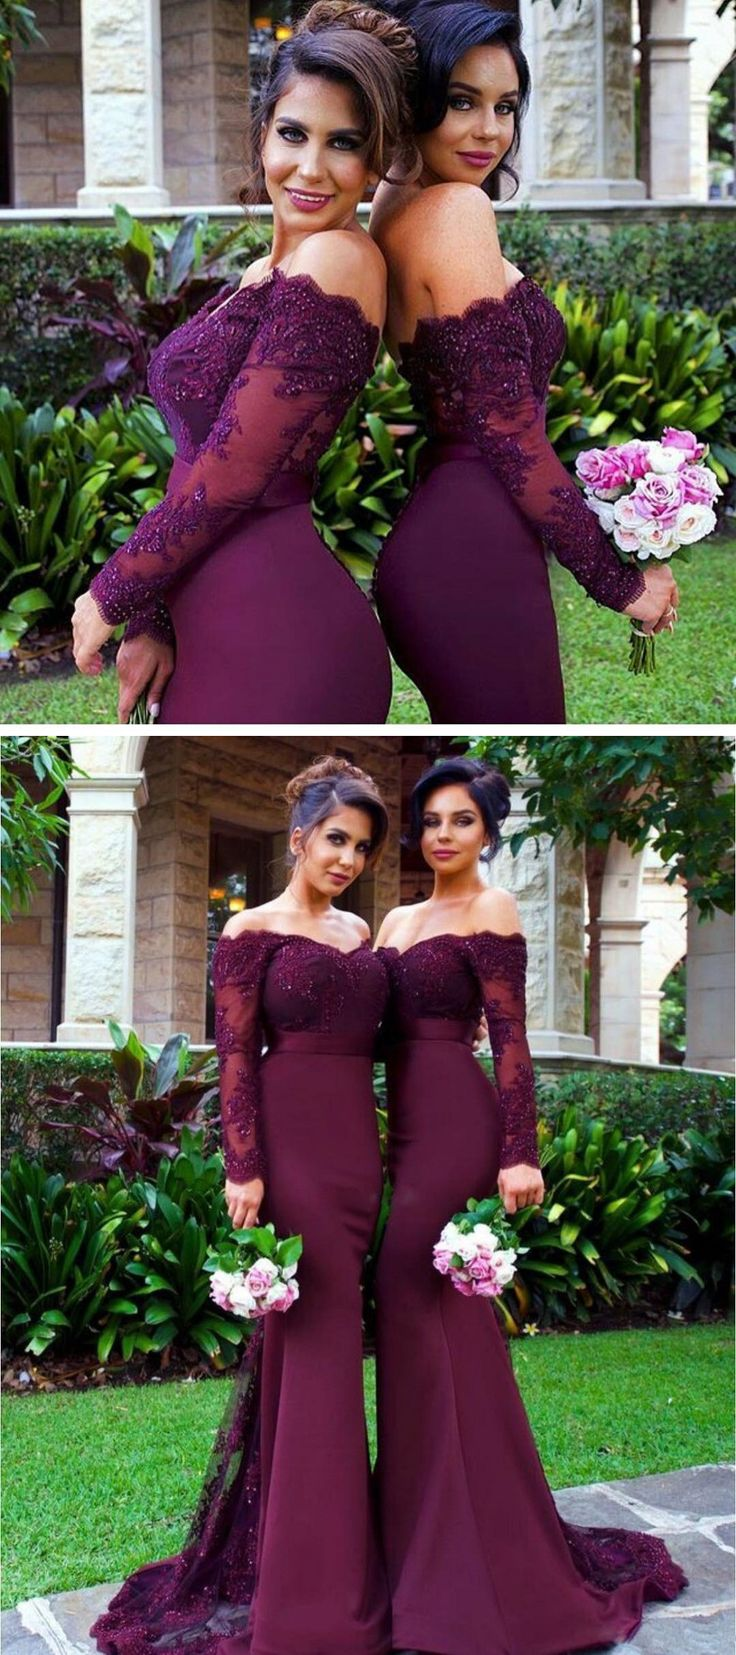 Best 20 red bridesmaid dresses ideas on pinterest christmas best 20 red bridesmaid dresses ideas on pinterest christmas bridesmaid dresses classy bridesmaid dresses and red bridesmaids ombrellifo Image collections